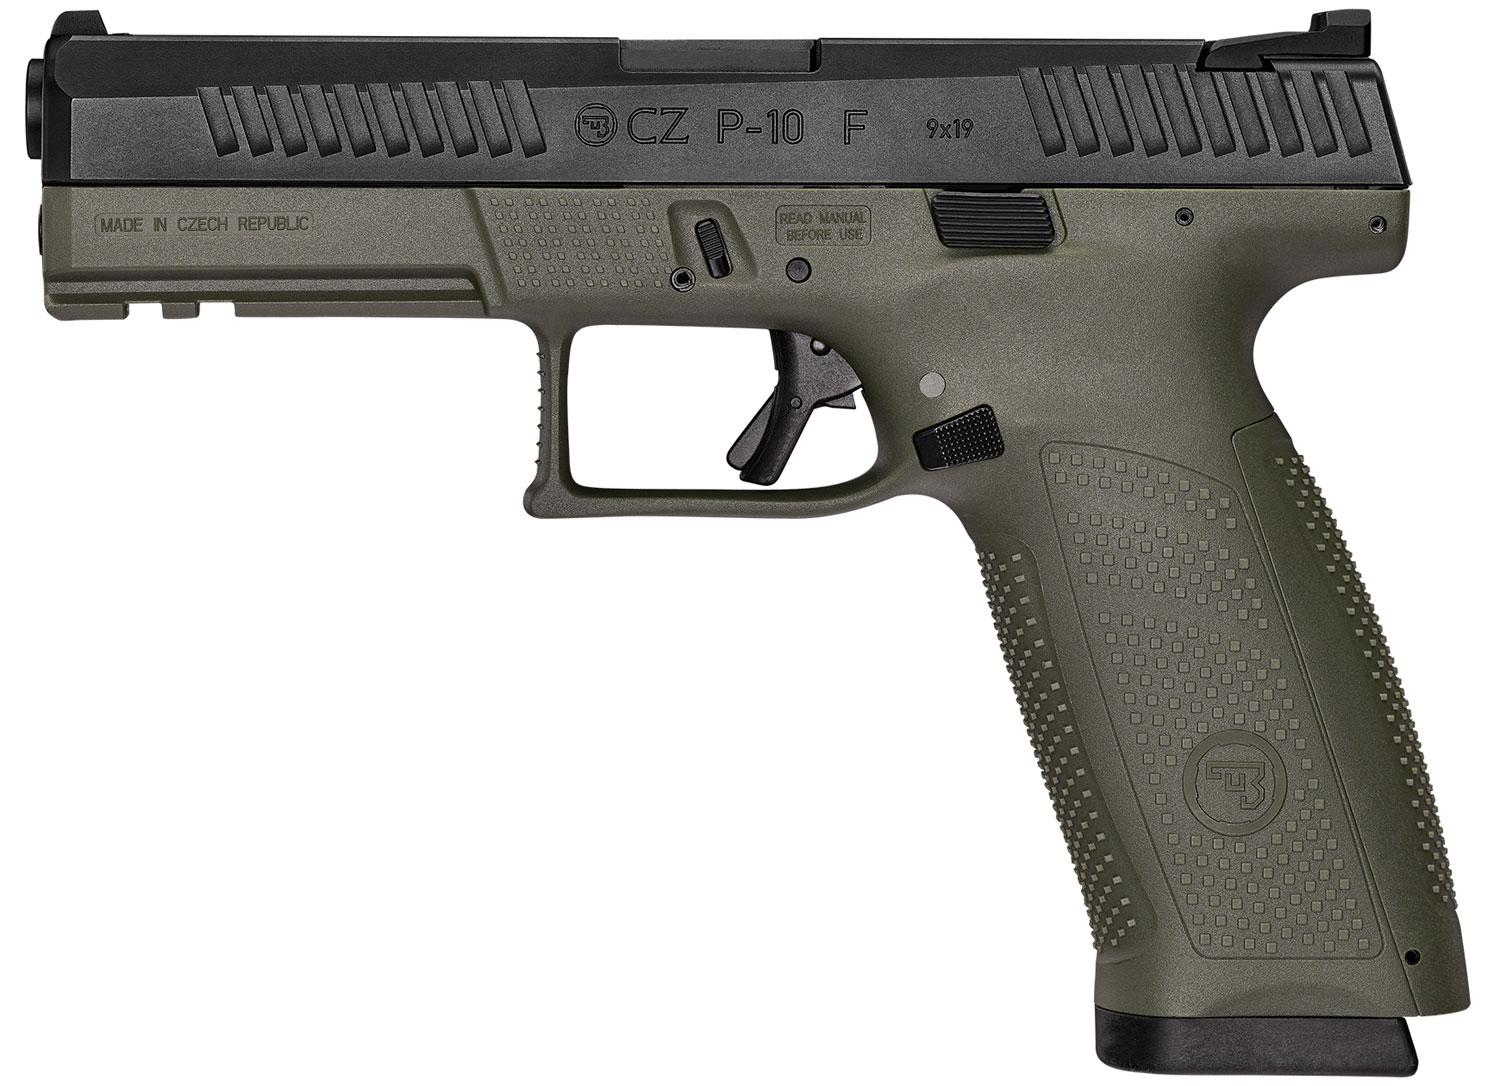 P-10 F 9MM BLK/OD 19+1 NS - REVERSIBLE MAG CATCH